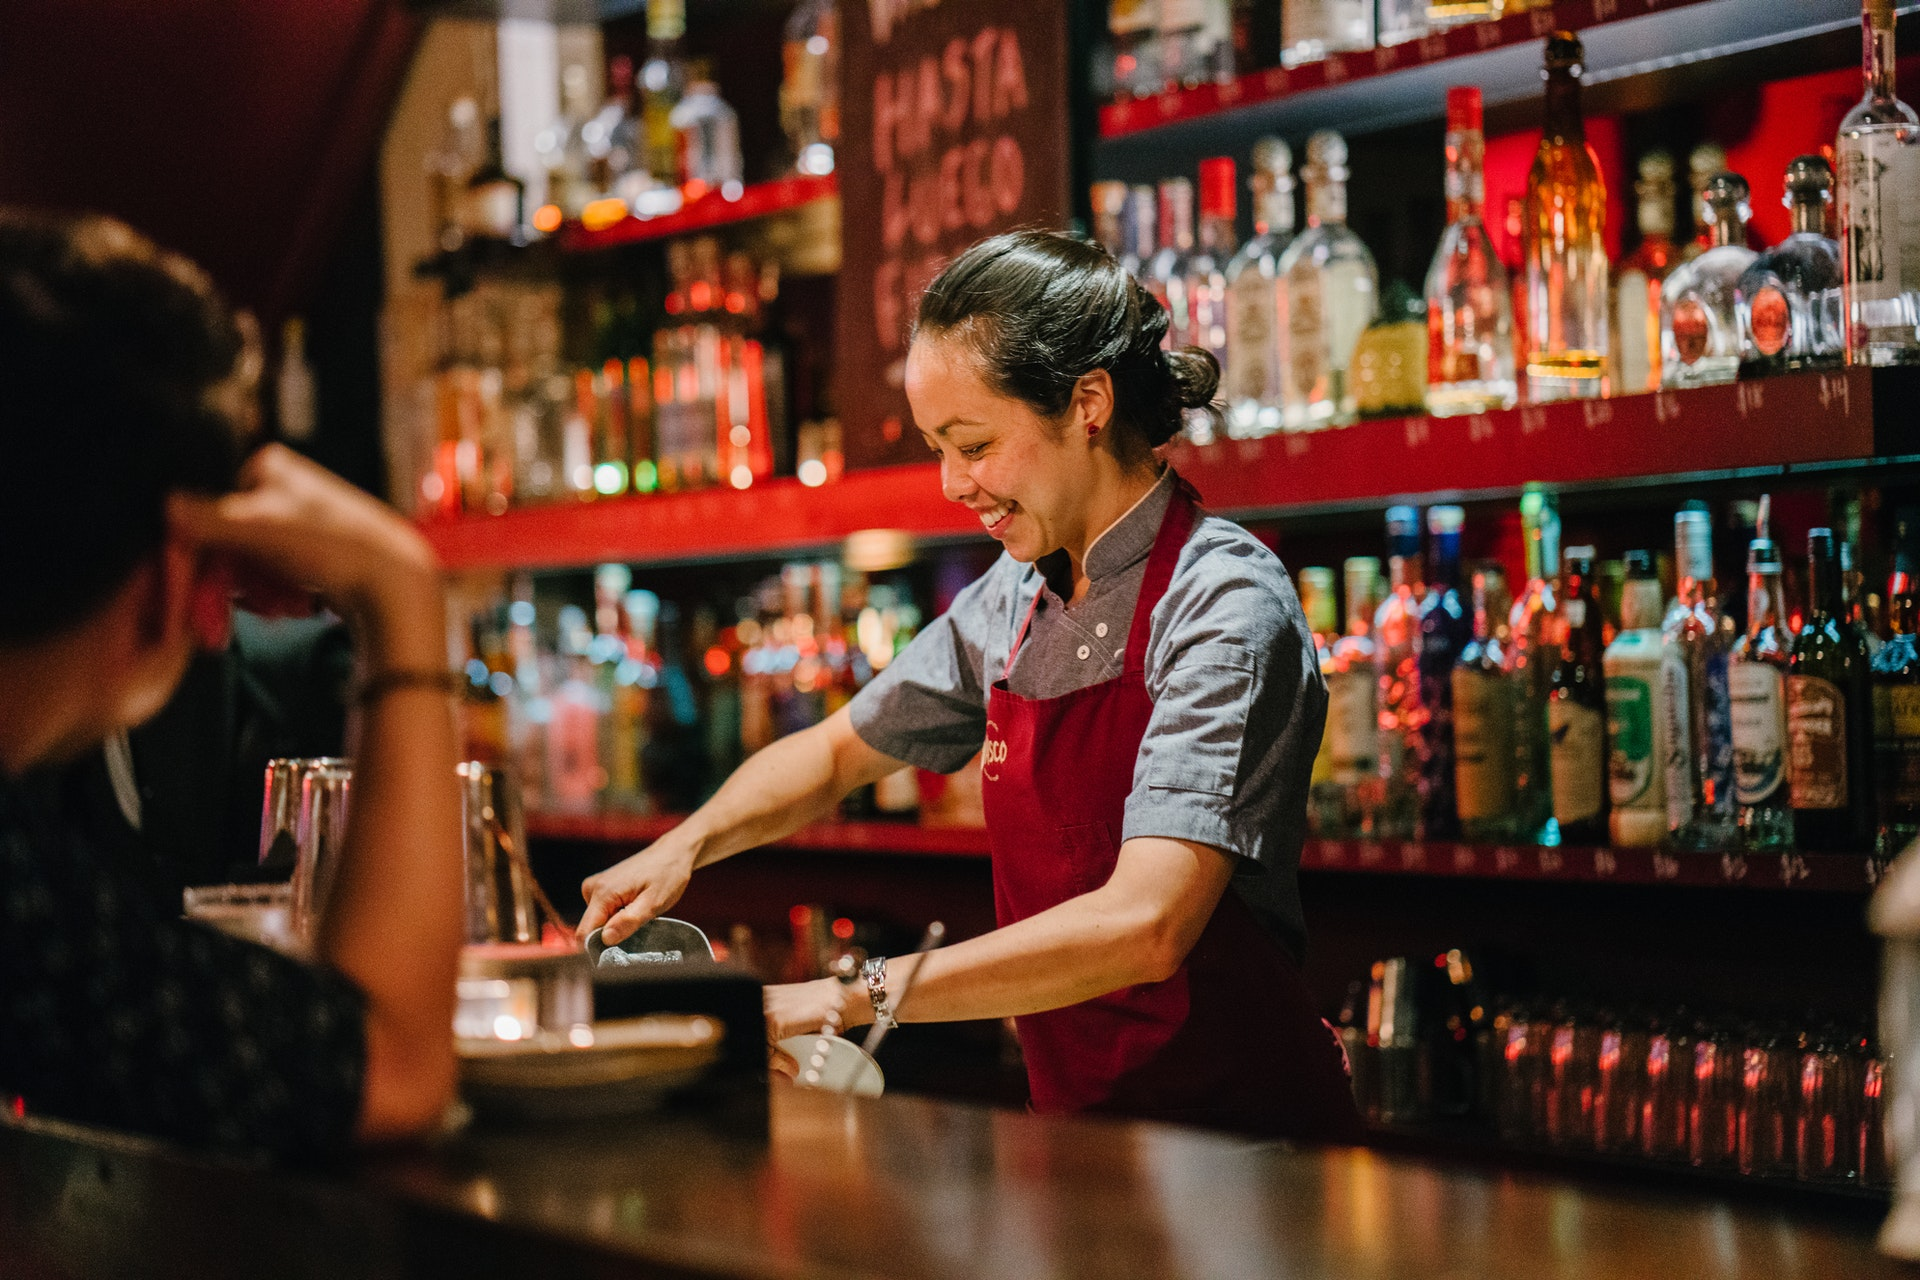 Need a Skill to Learn While Stuck at Home? Take Up Bartending